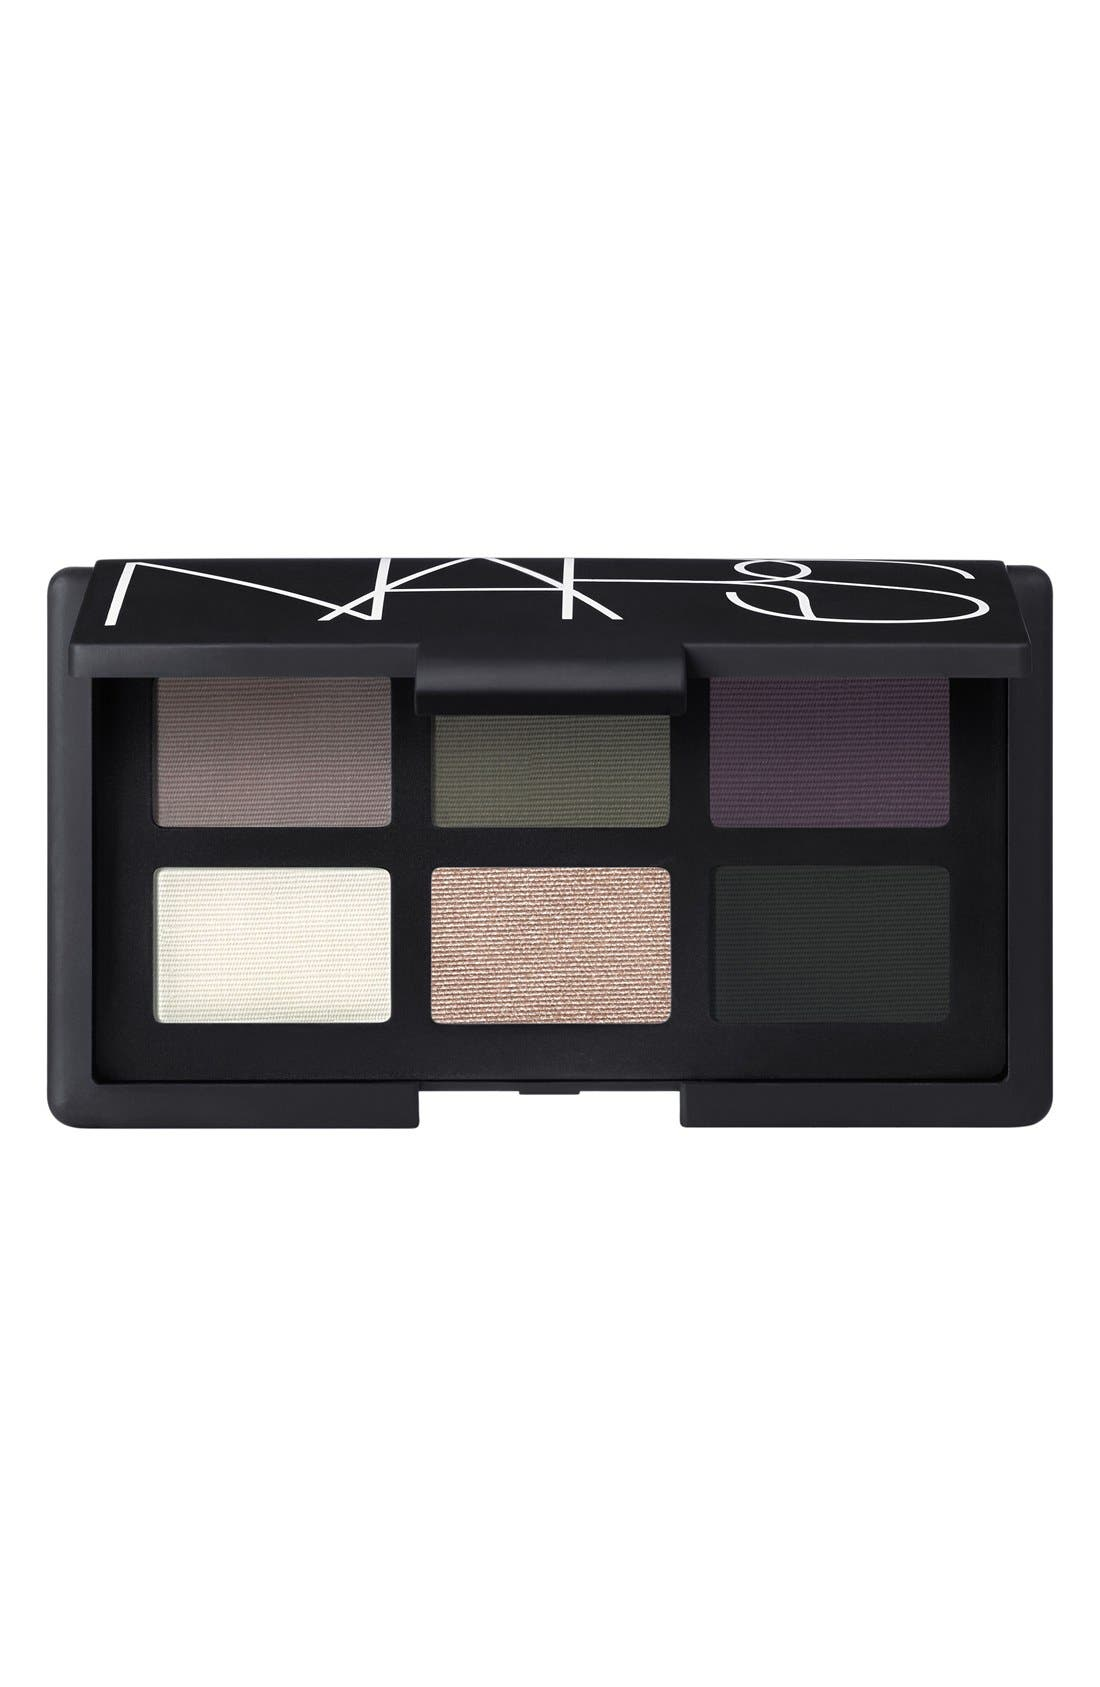 'Eye-Opening Act - Inoubliable Coup d'Oeil' Eyeshadow Palette,                             Main thumbnail 1, color,                             000